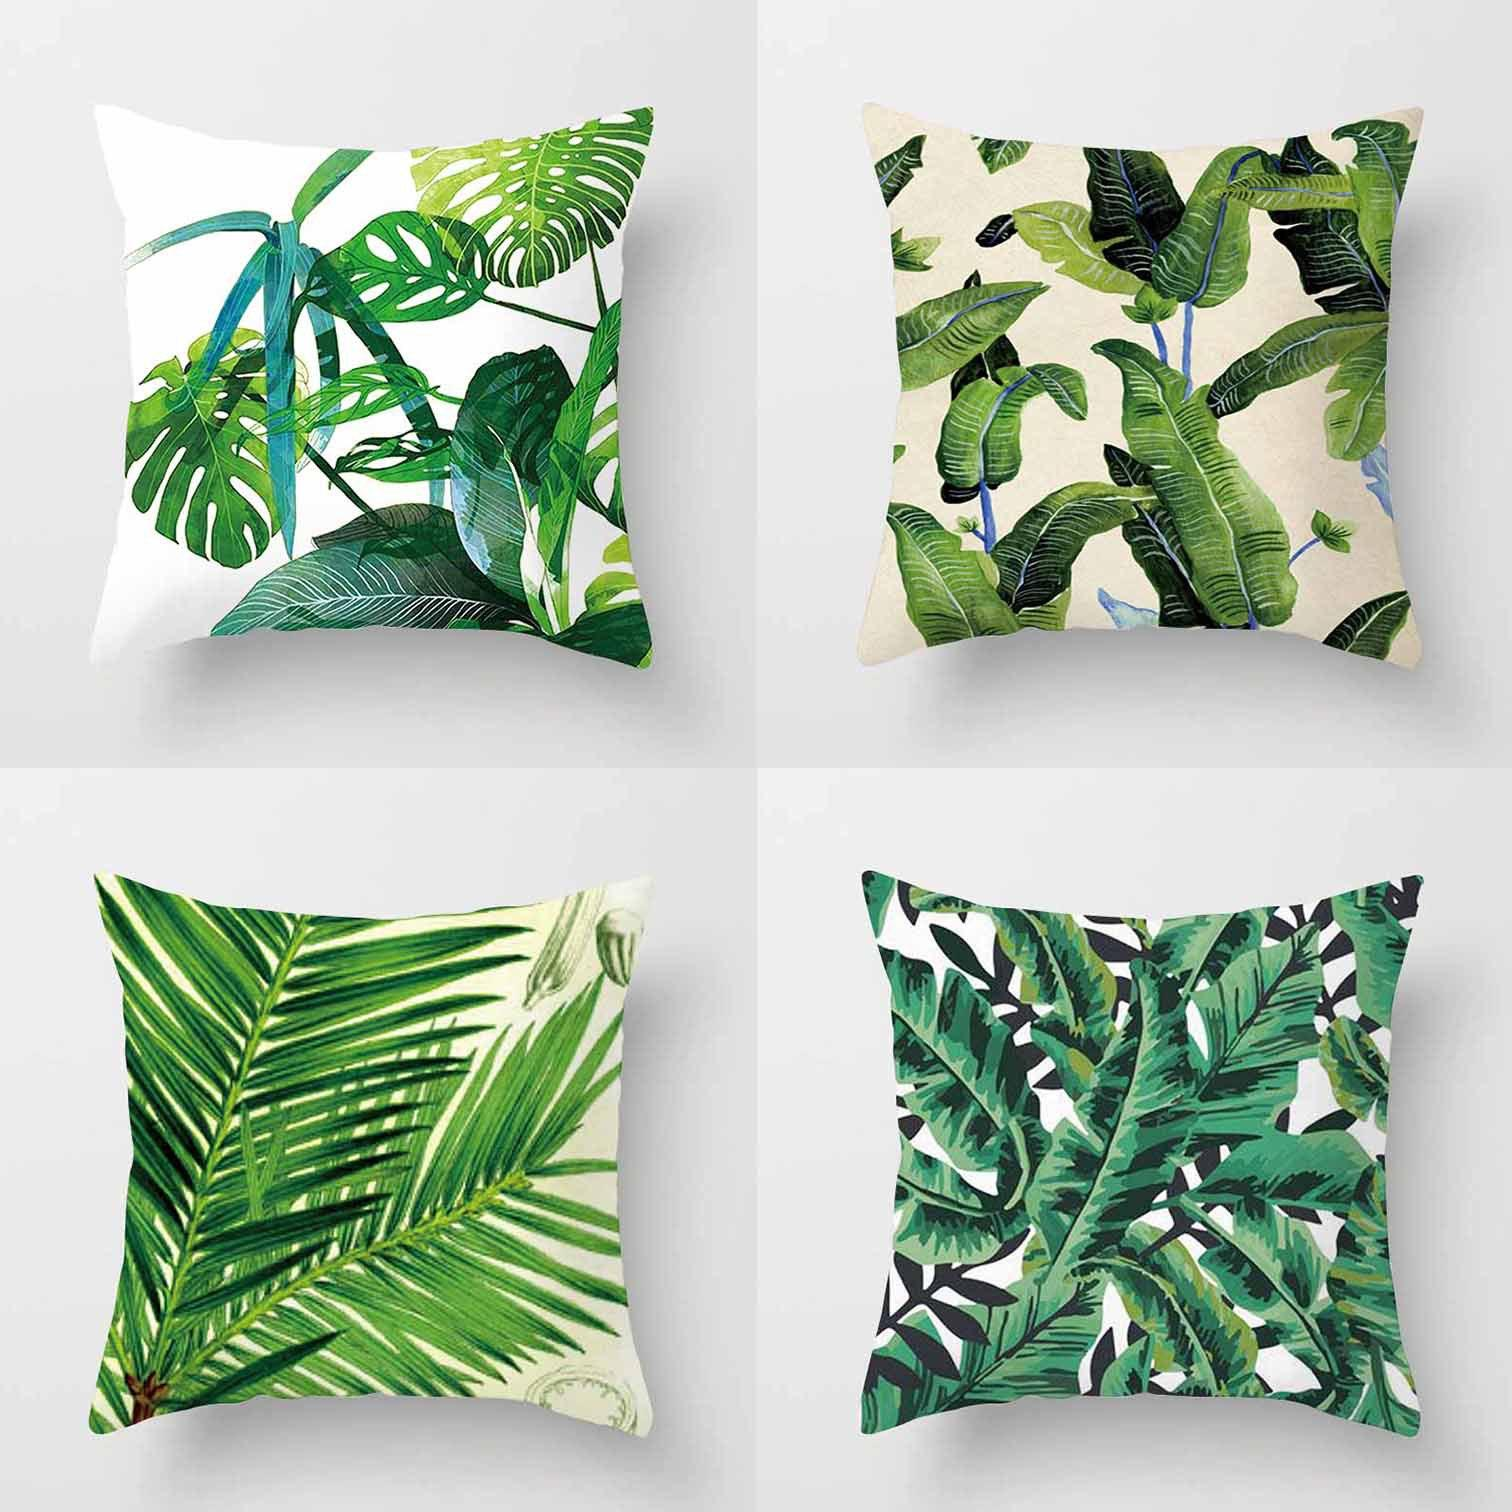 45 45cm Africa Tropical Plant Printed Cushion Cover Green Leaves